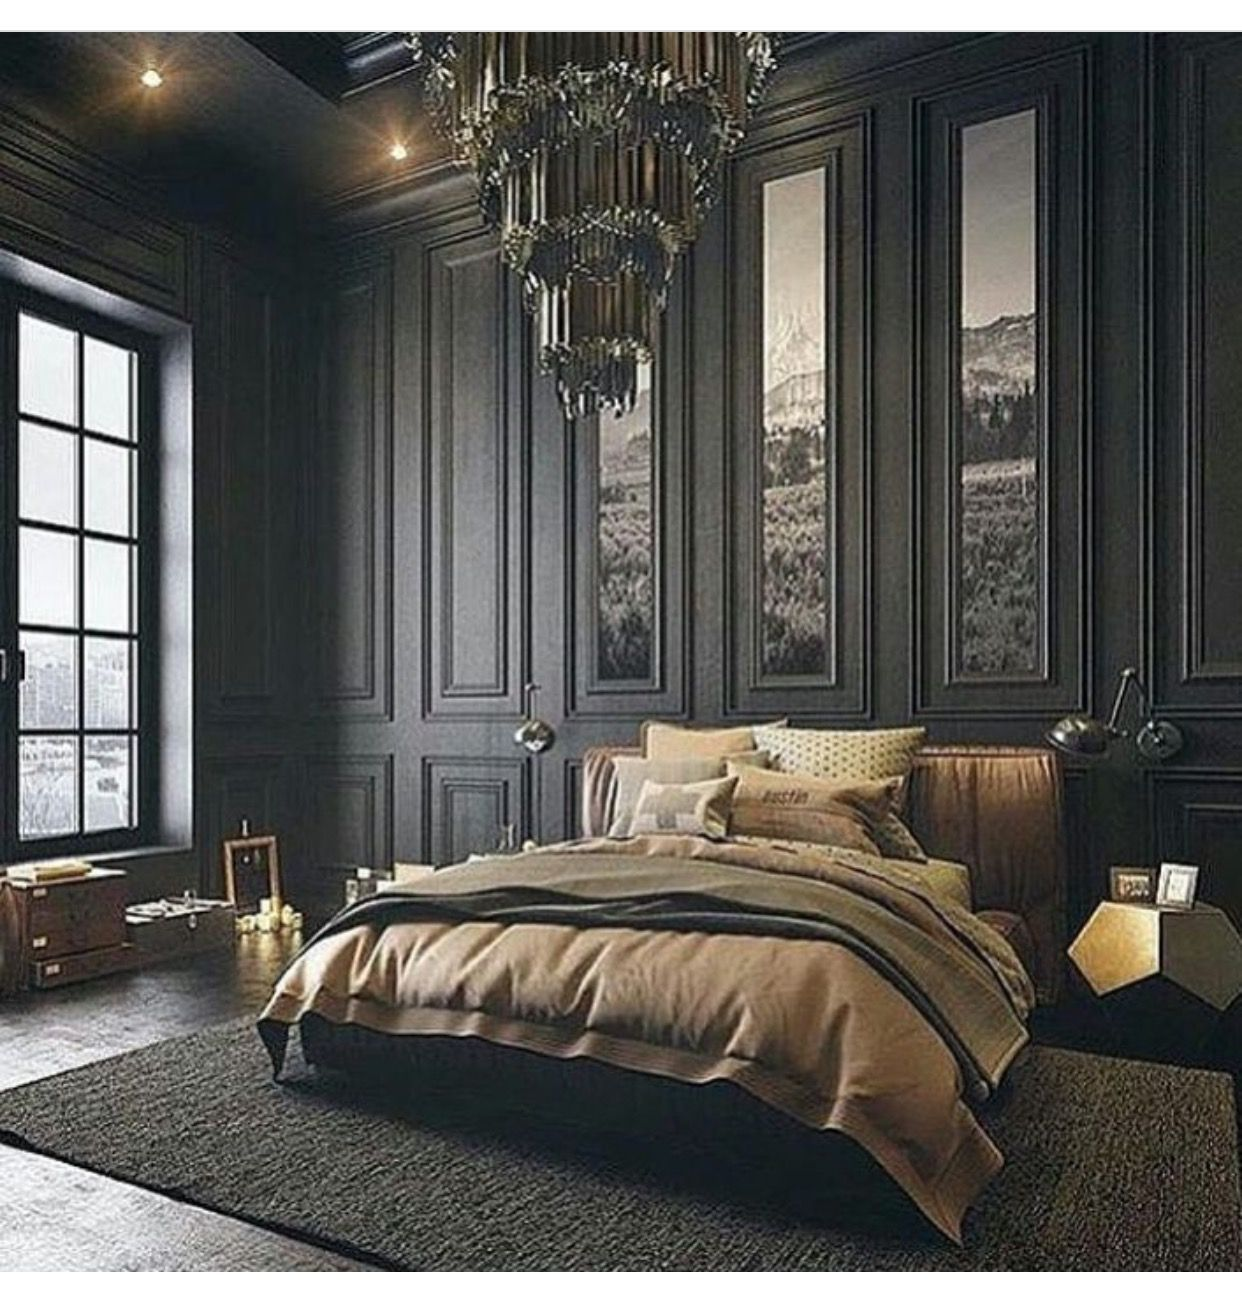 Modern Vintage Bedroom With High Ceilings, Chandelier, And